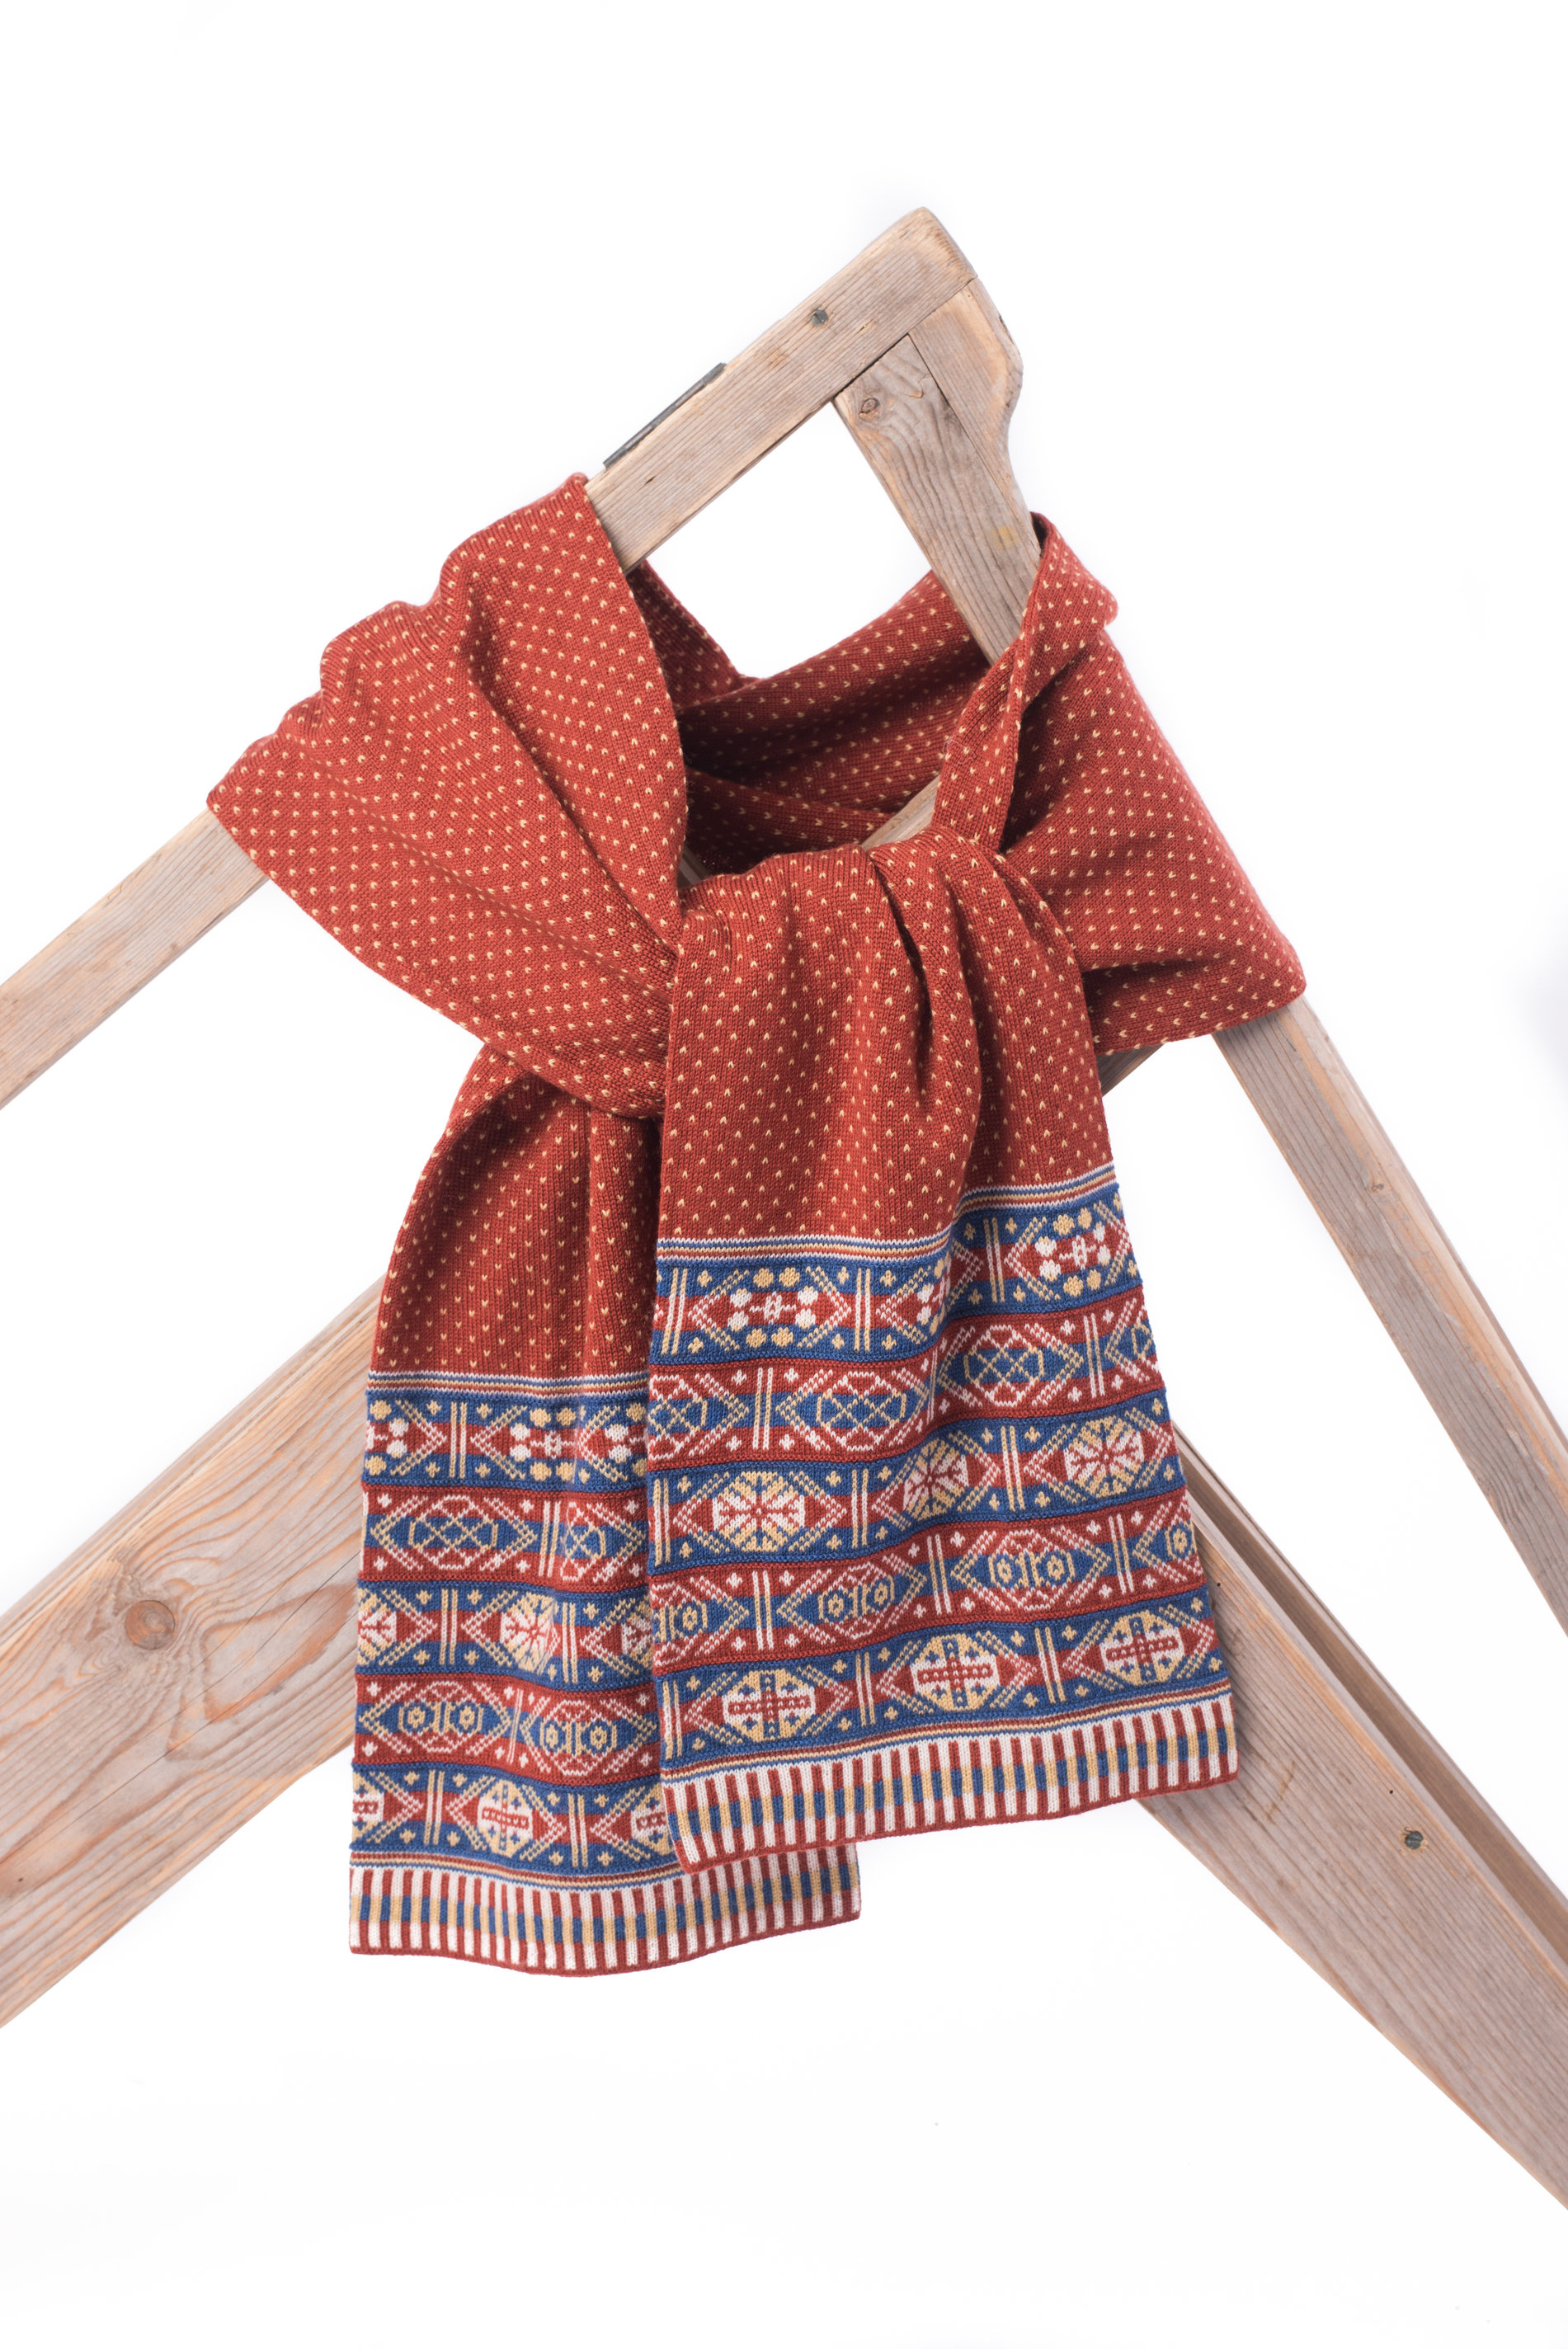 Heritage colour scarf with Fair Isle at ends only, blue